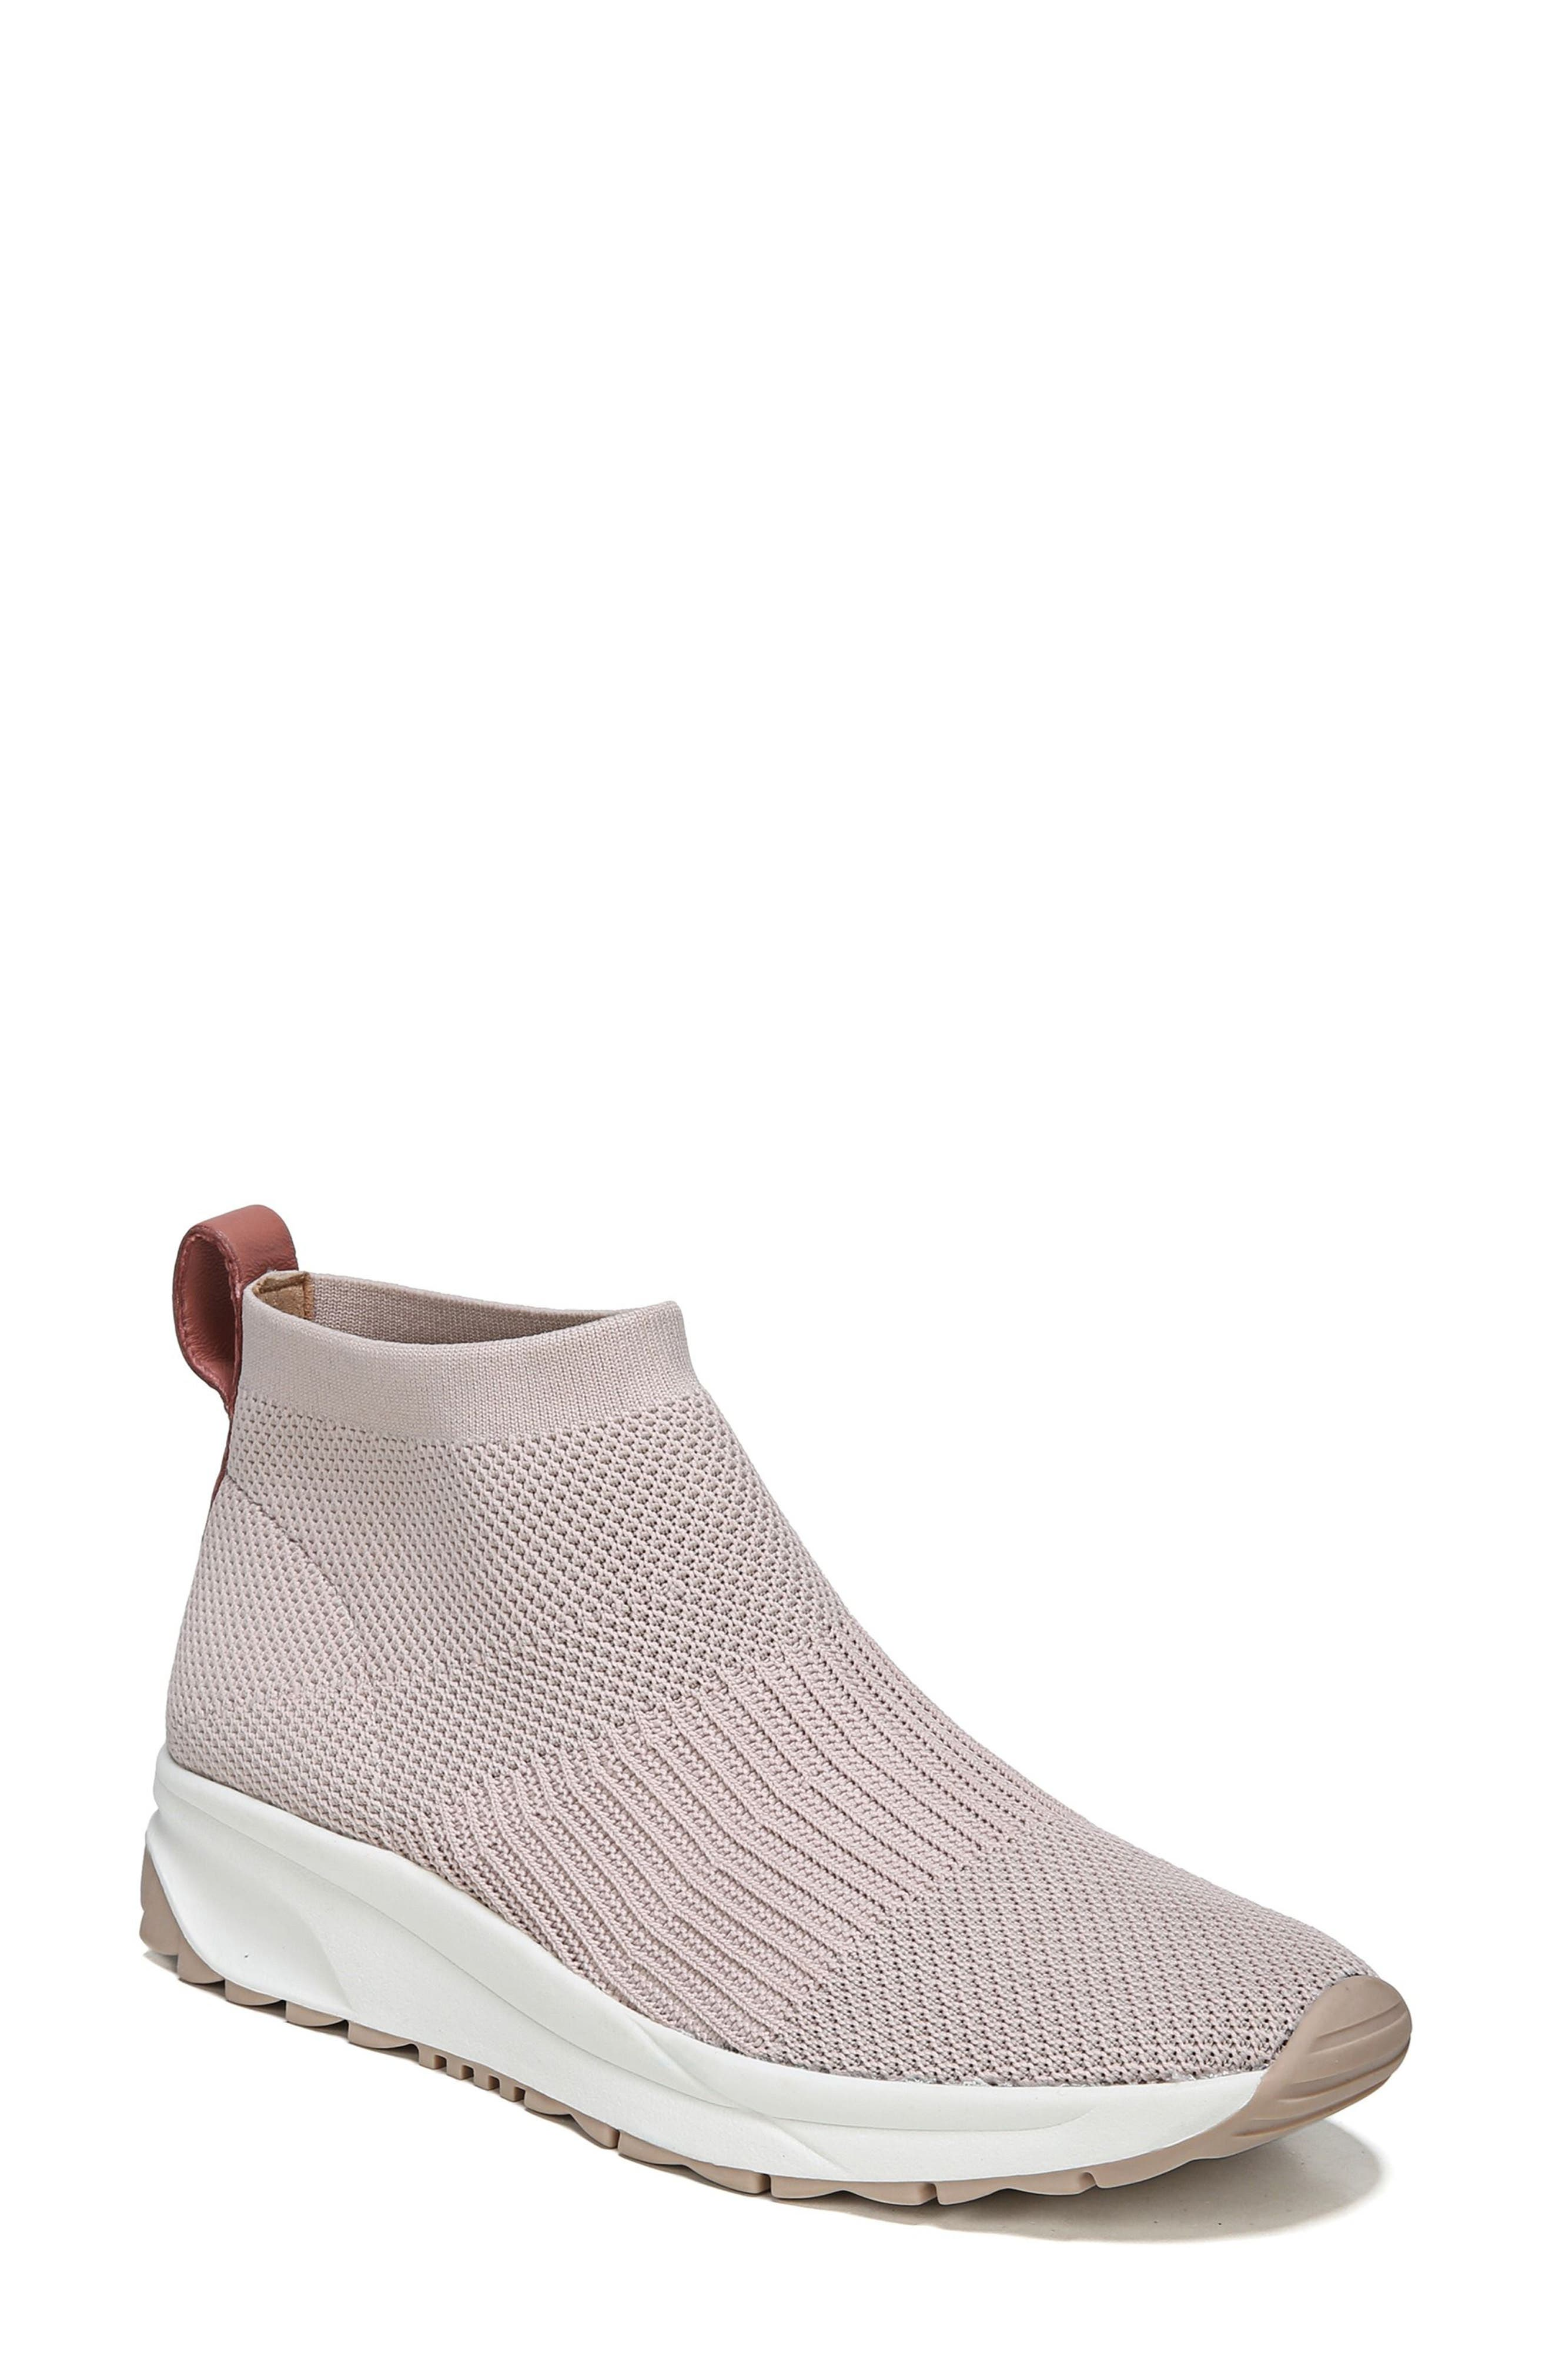 Selena Sneaker Boot,                             Main thumbnail 1, color,                             Pink Stretch Fabric